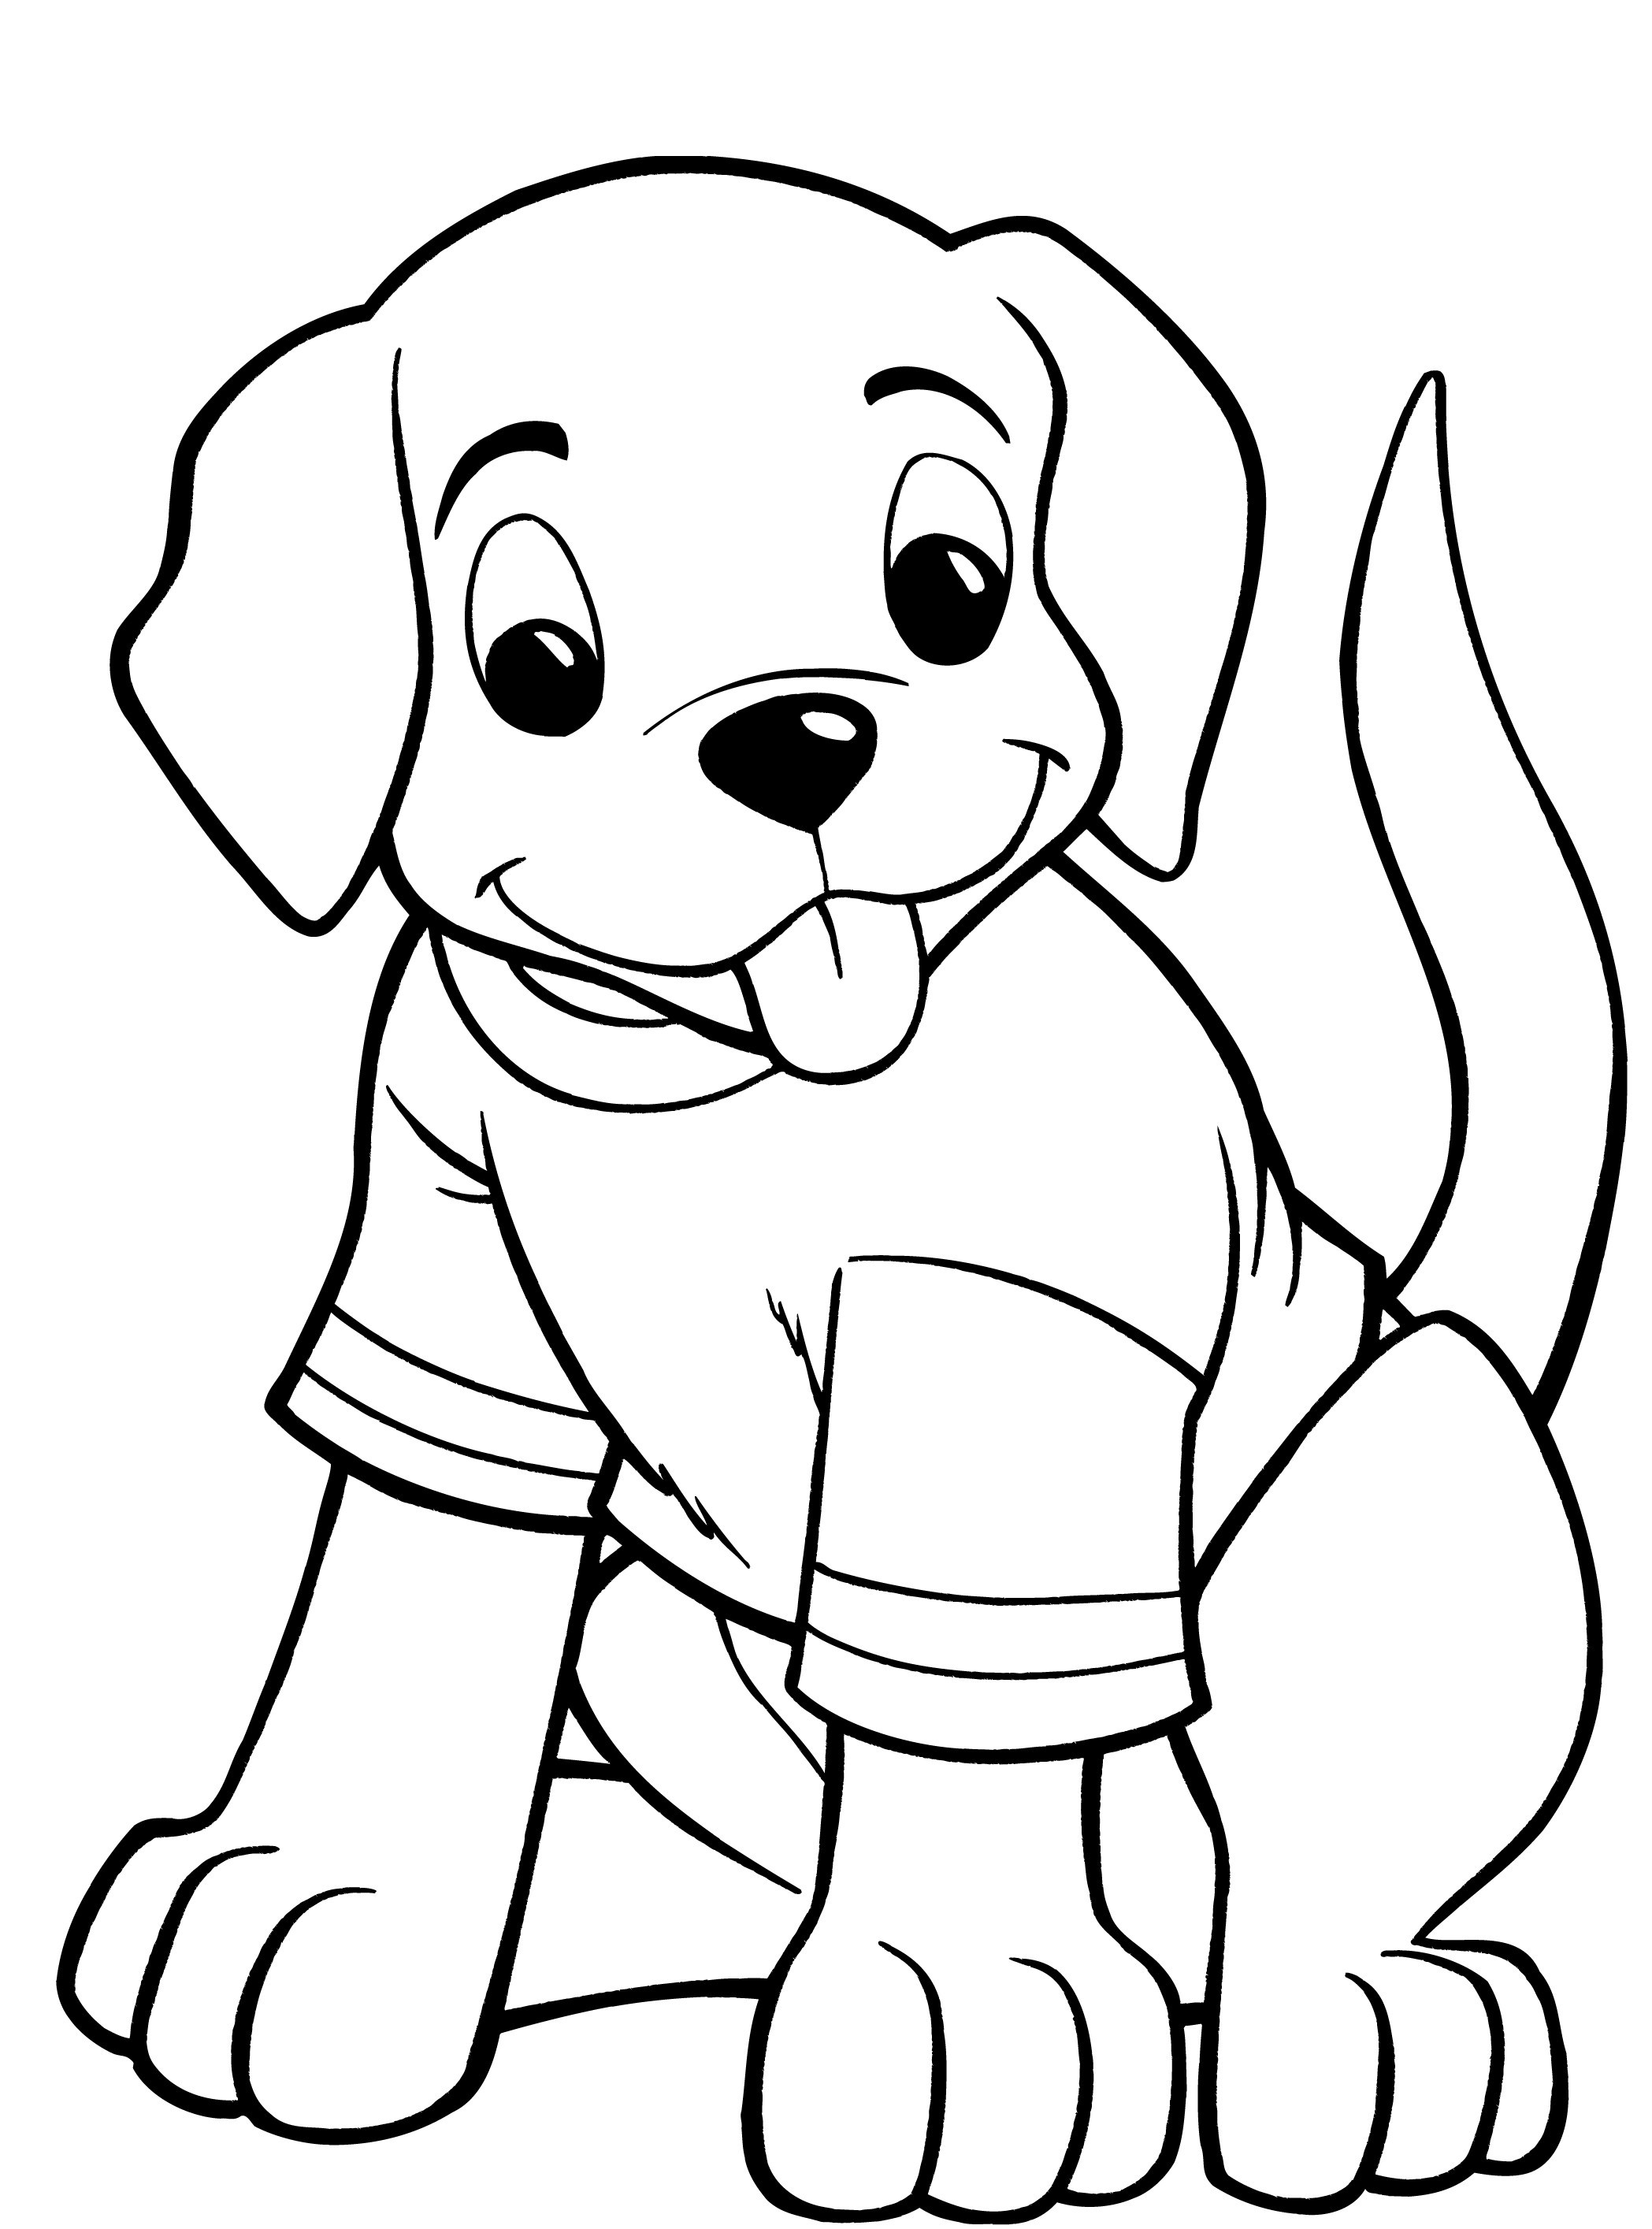 puppy pictures for coloring free printable puppies coloring pages for kids coloring puppy pictures for